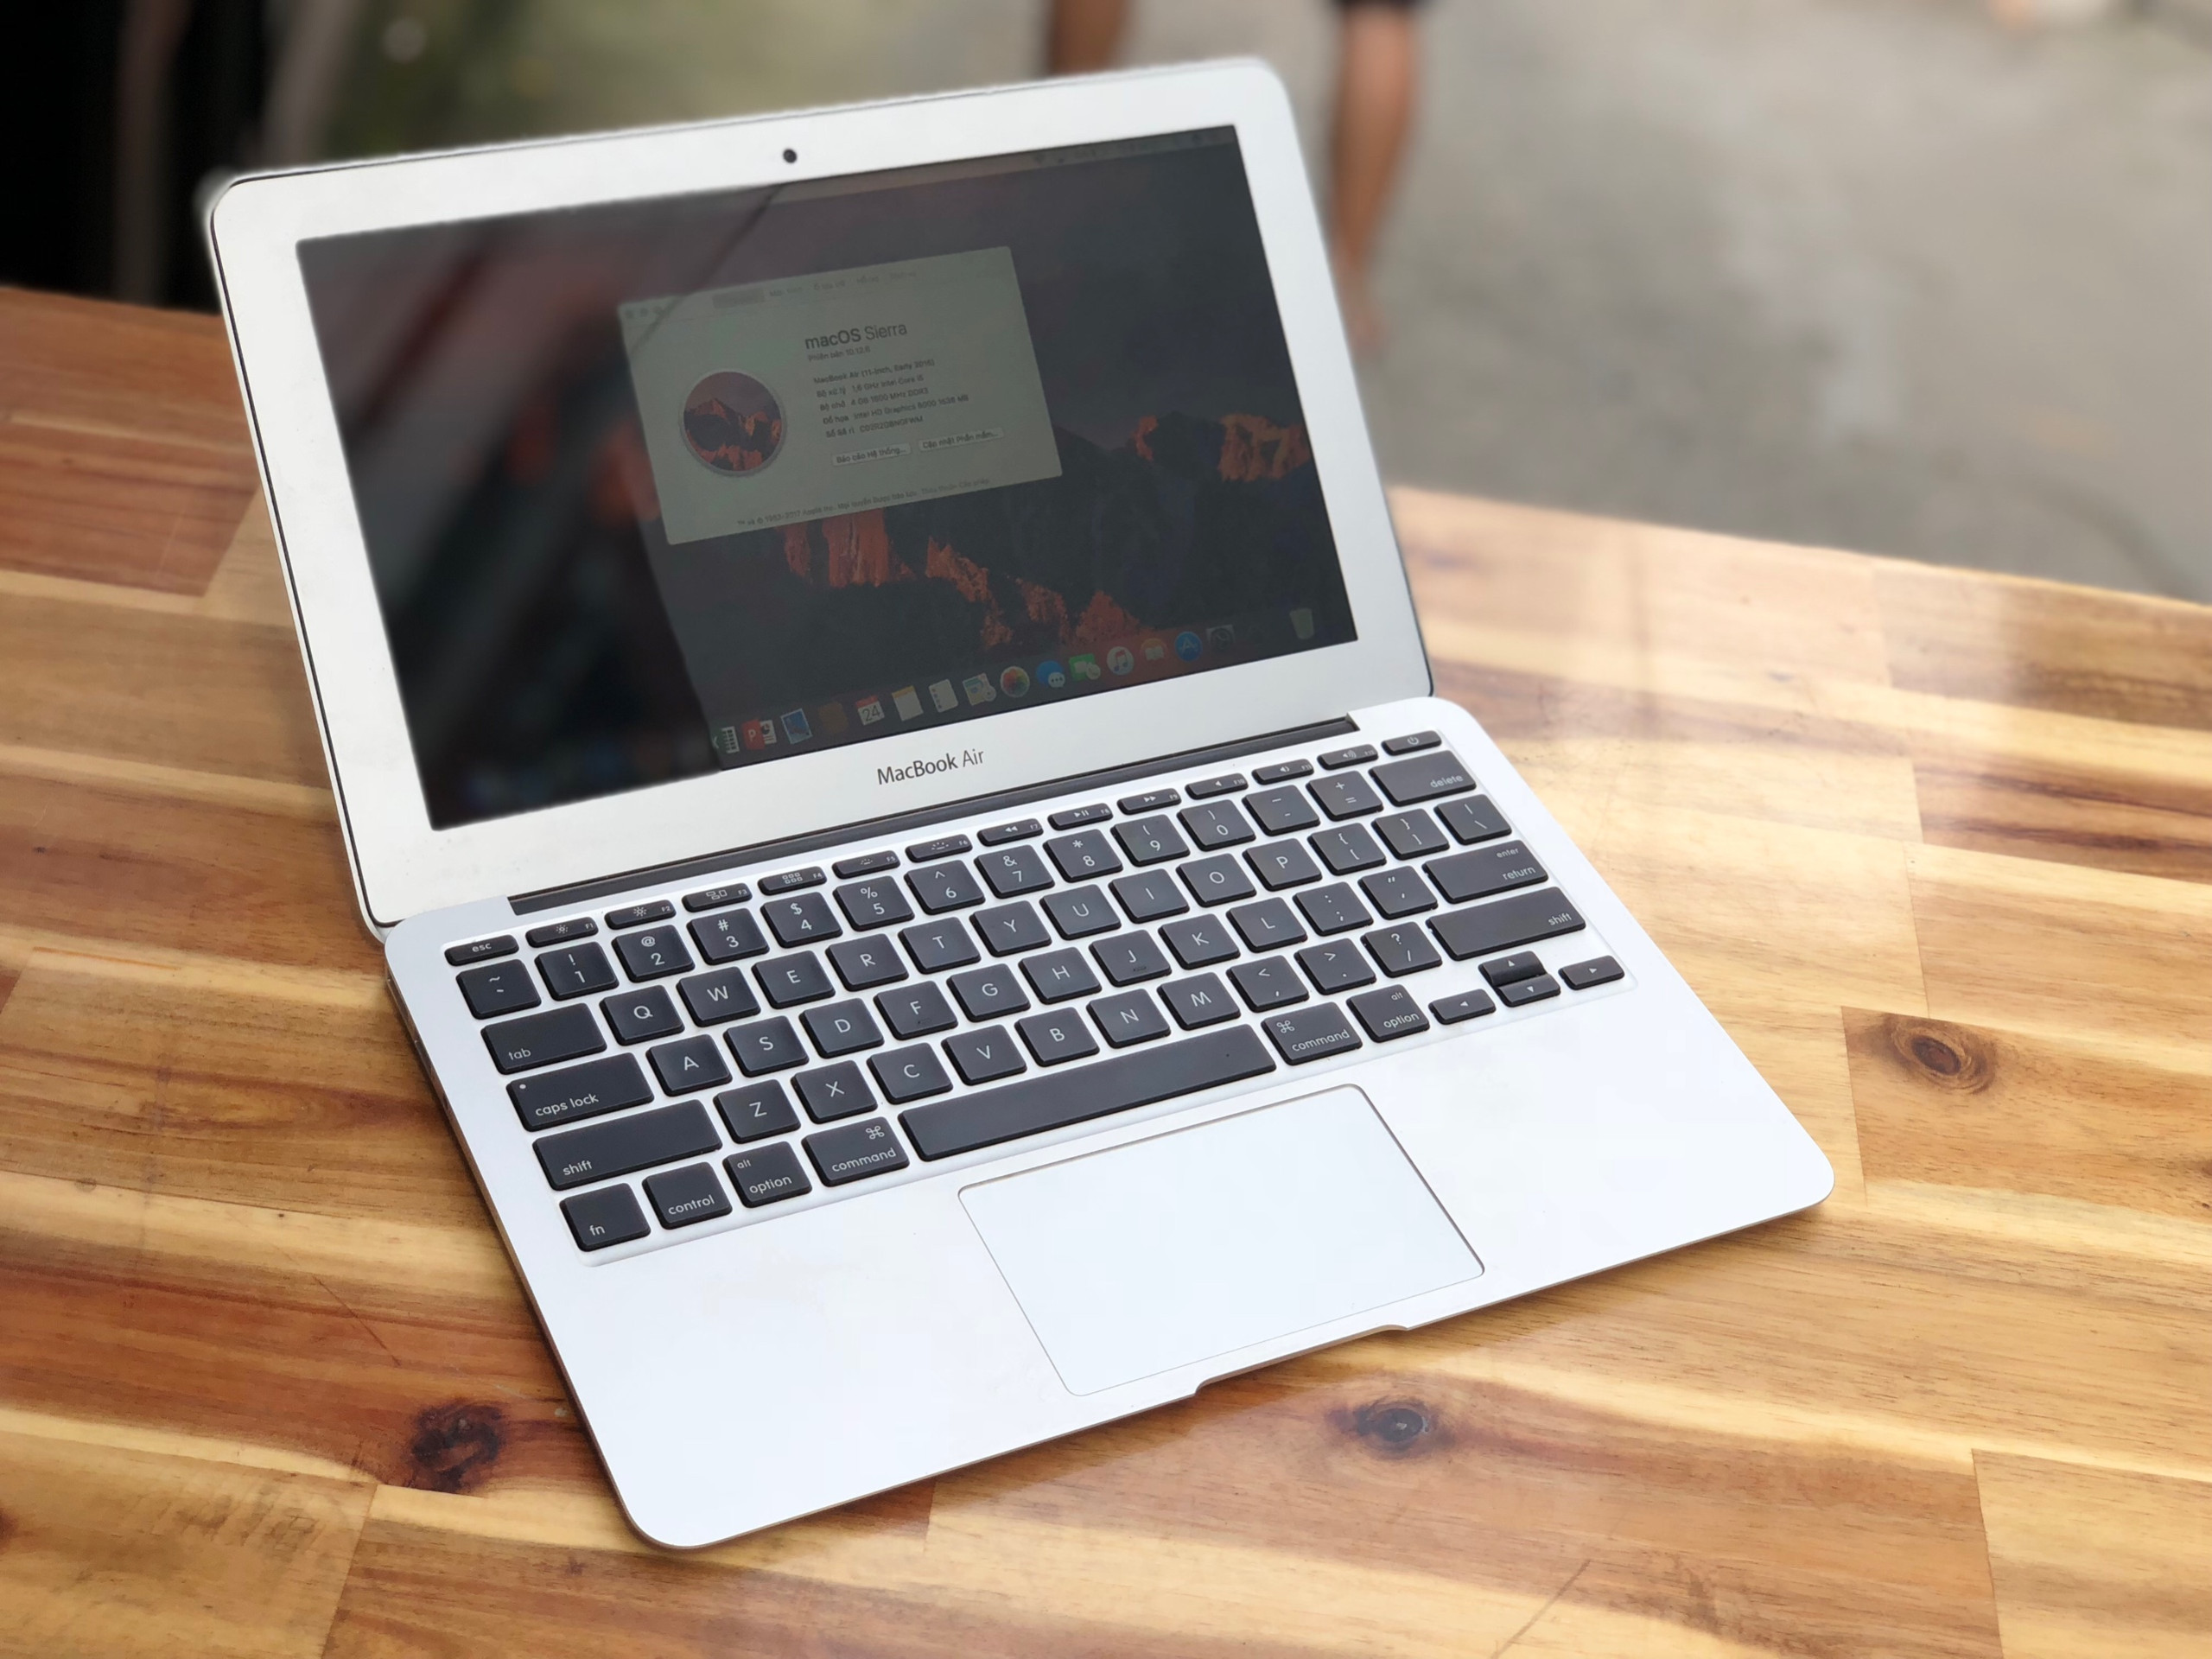 Macbook Air 2015 11in, i5 4G SSD128 Pin Khủng 5-10h Đẹp zin 100%2